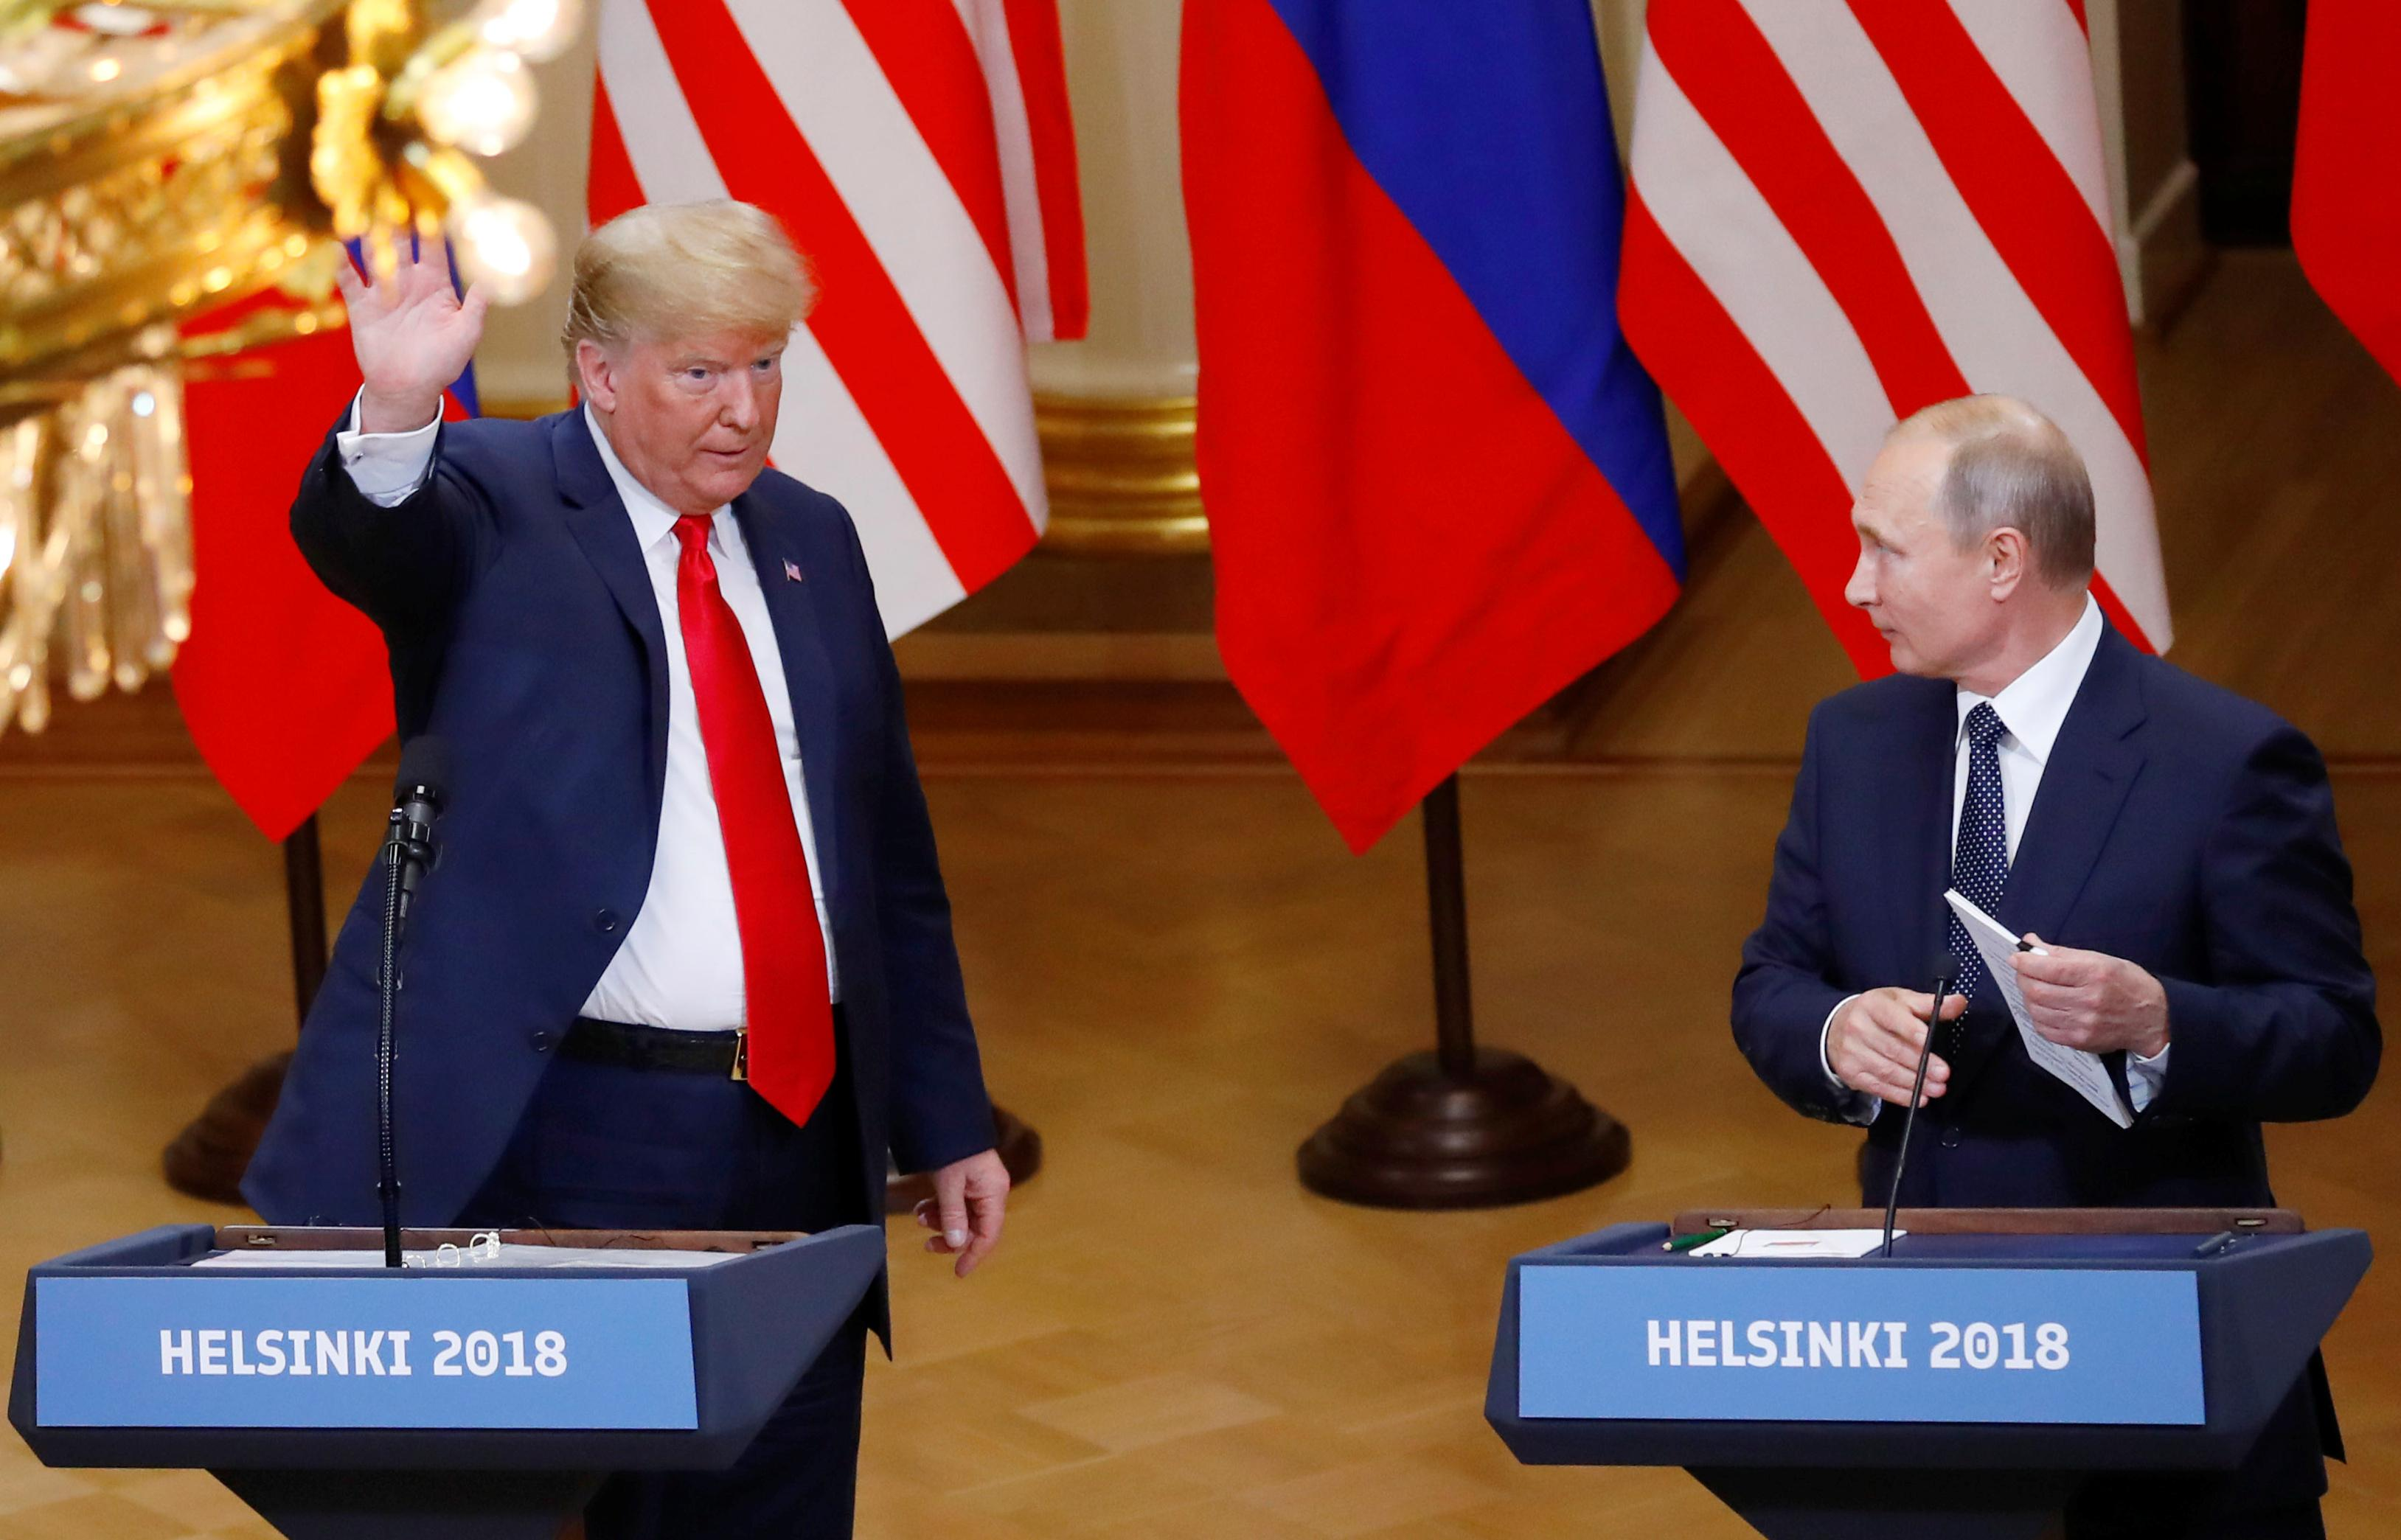 U.S. President Donald Trump and Russian President Vladimir Putin react at the end of the joint news conference after their meeting in Helsinki, Finland, July 16, 2018. Leonhard Foeger